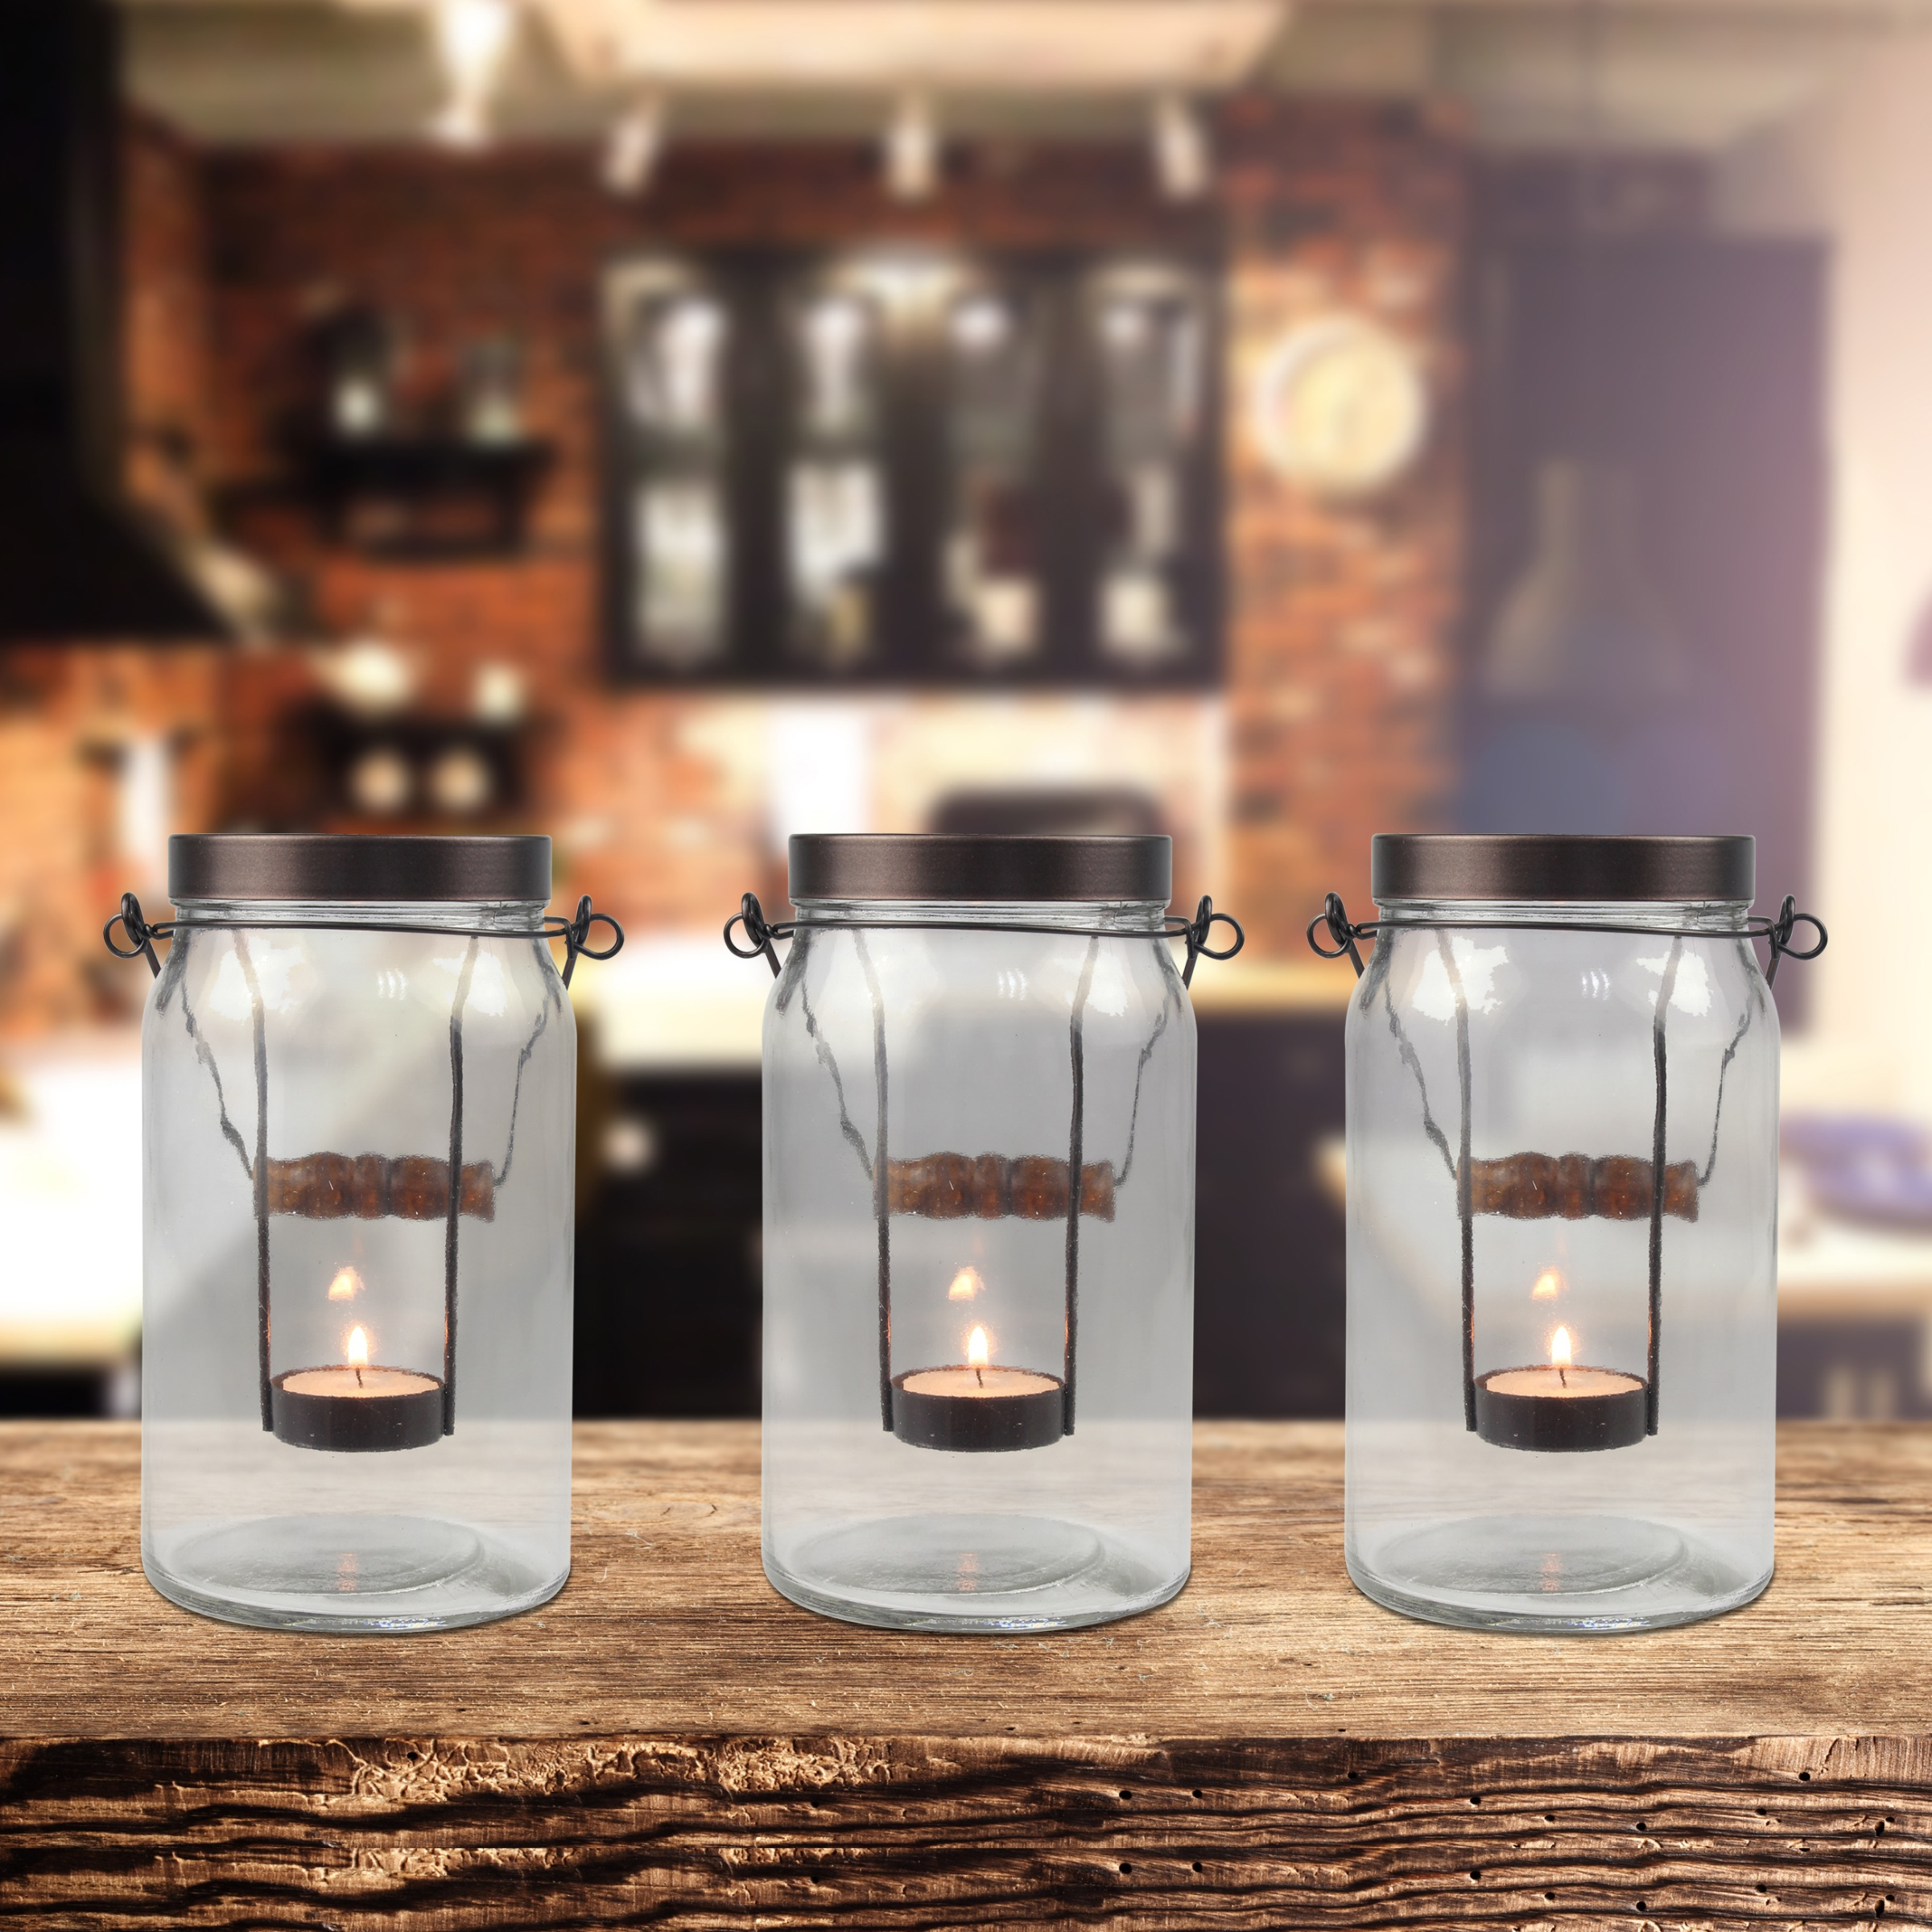 Better Homes and Gardens Jar Tealight Candle Holders, 3-Pack